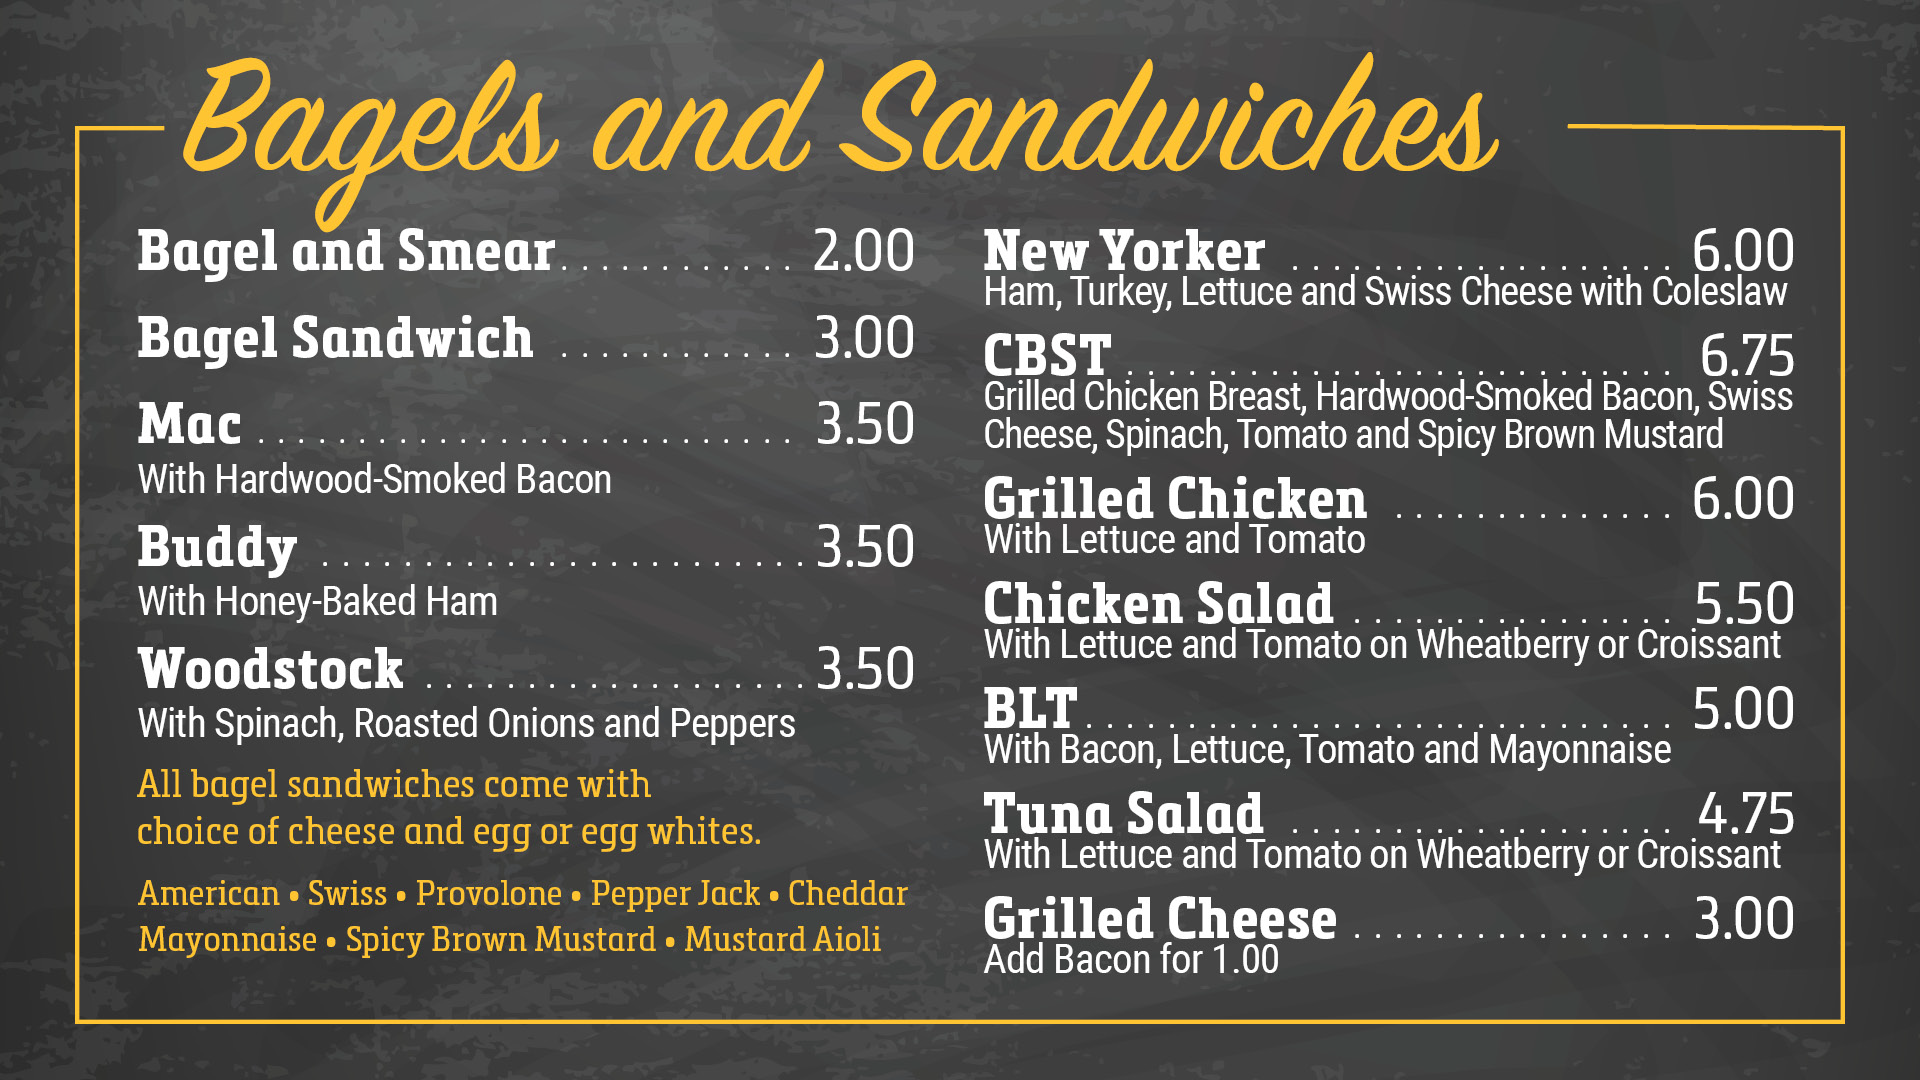 Bagels & Sandwiches Menu